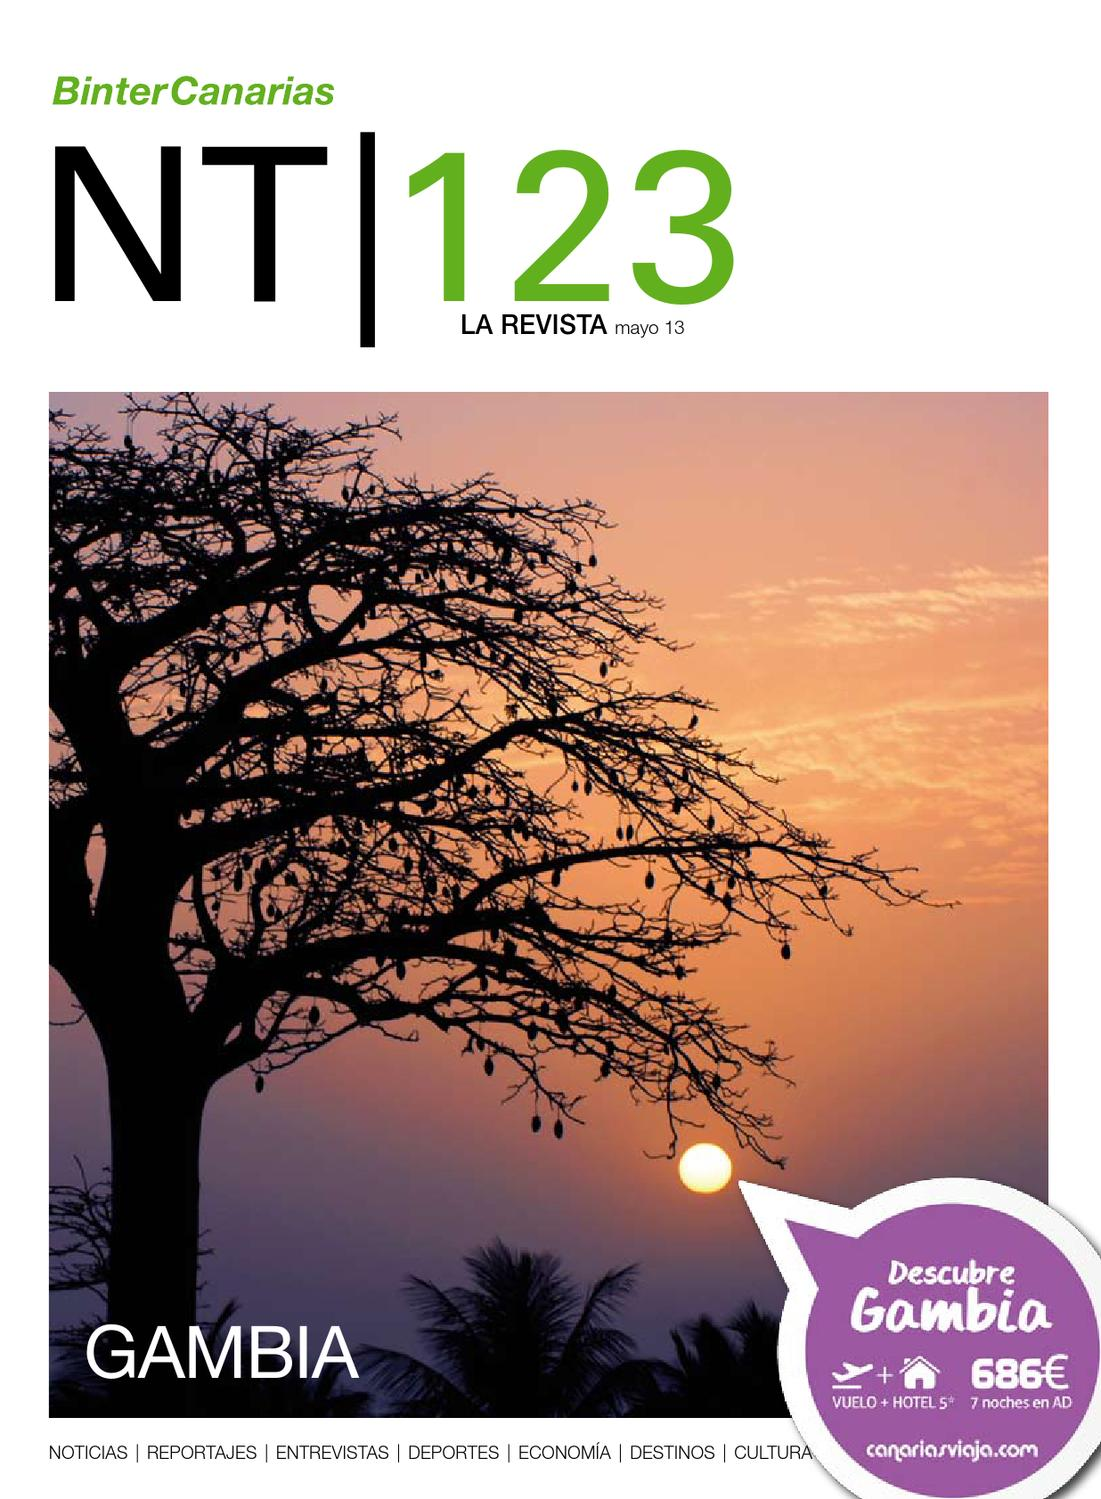 NT 123 by BinterCanarias - issuu